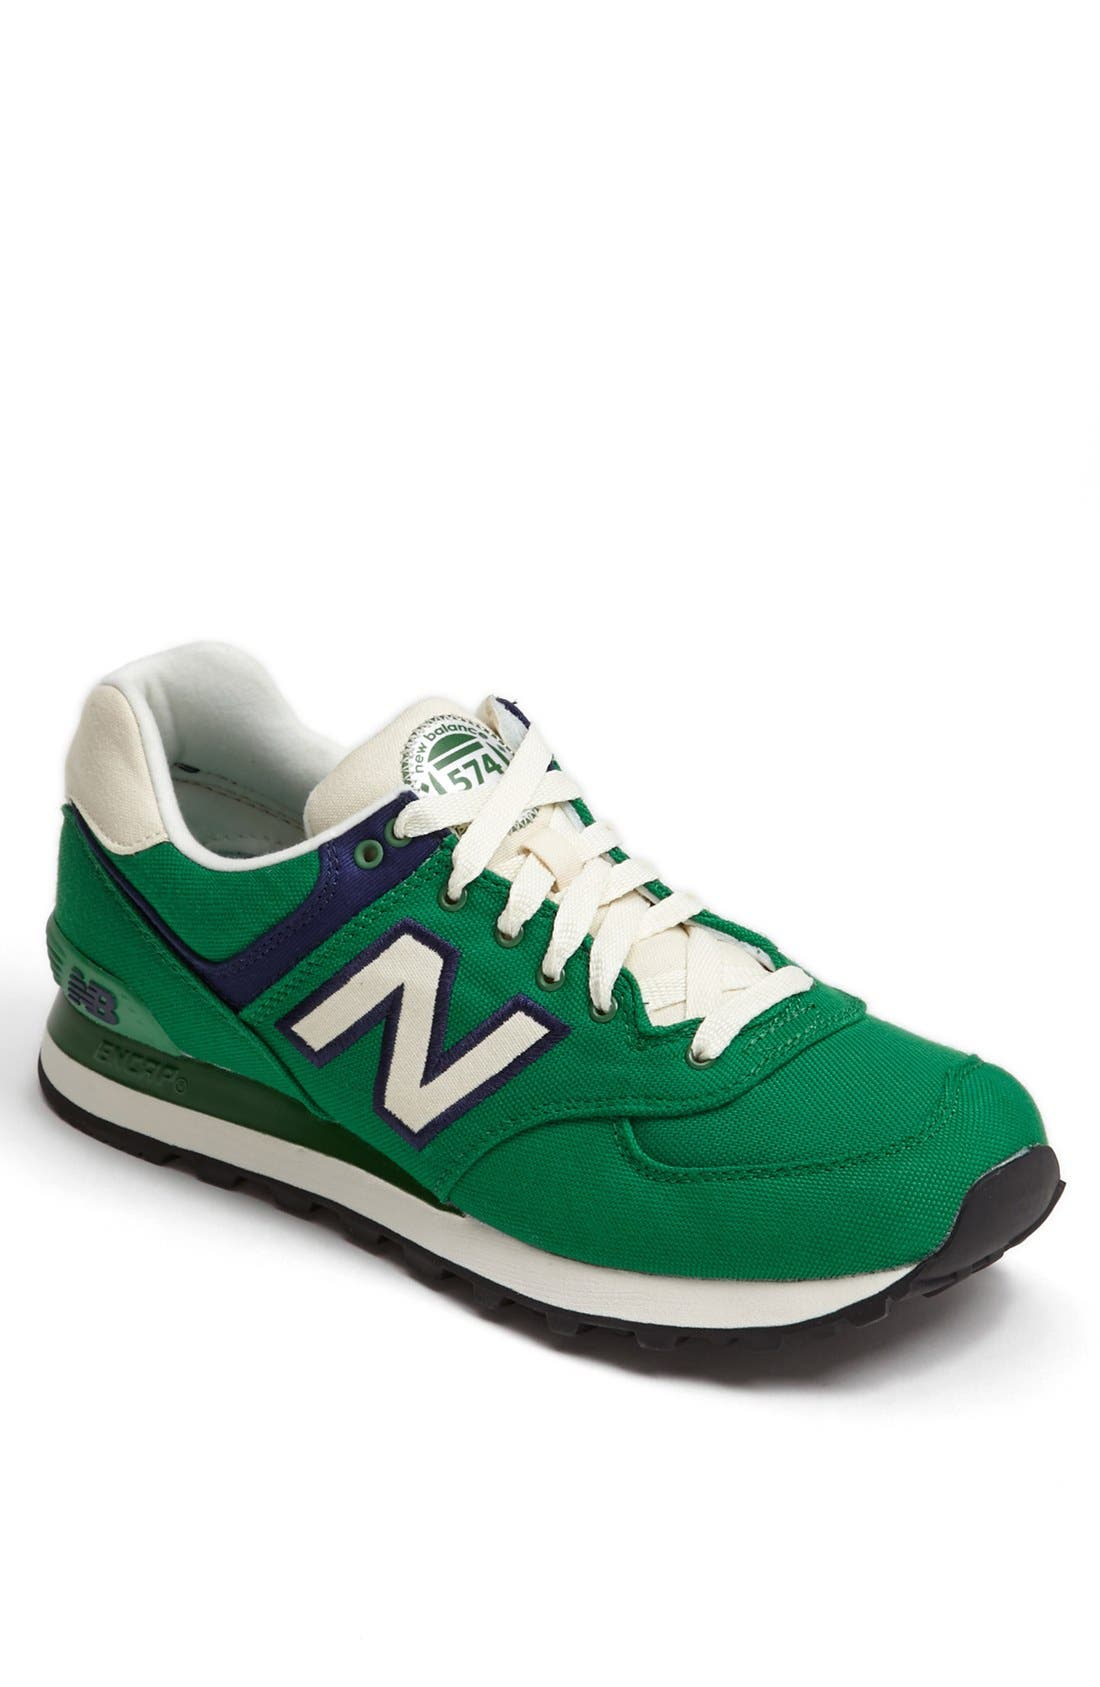 Alternate Image 1 Selected - New Balance '574 Rugby' Sneaker (Men)